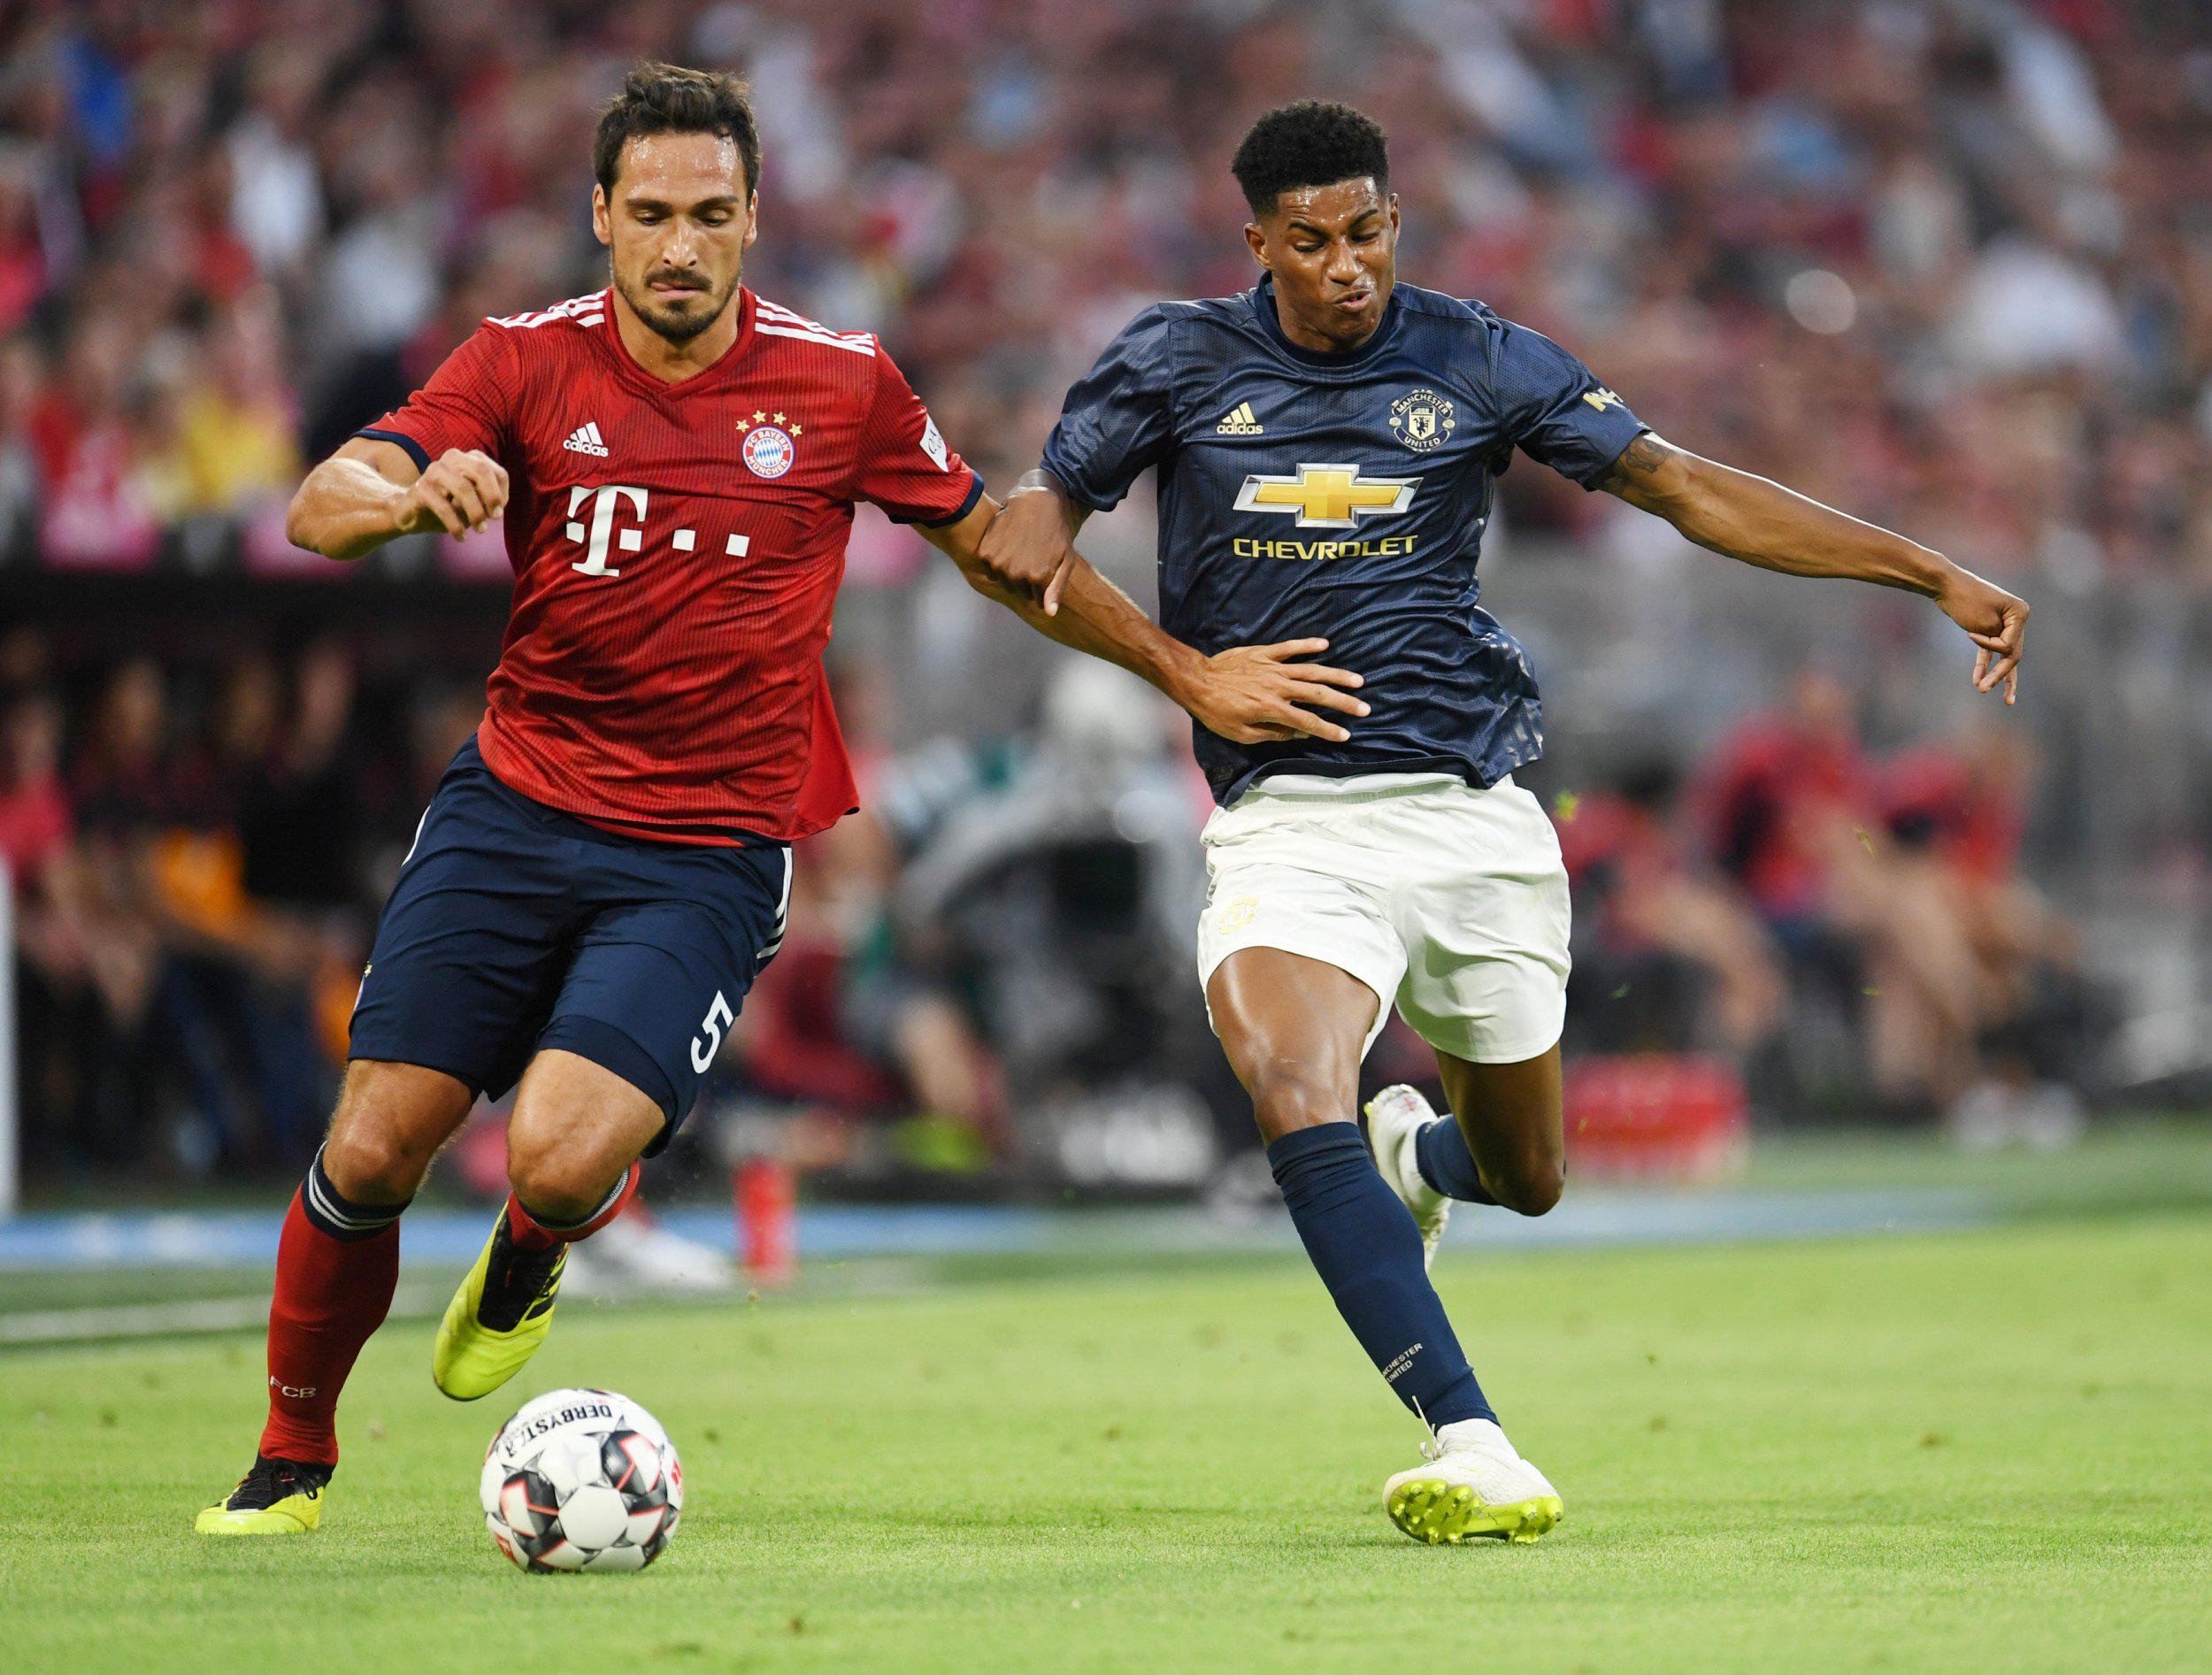 Soccer Football - Pre Season Friendly - Bayern Munich v Manchester United - Allianz Arena, Munich, Germany - August 5, 2018 Manchester United's Marcus Rashford in action with Bayern Munich's Mats Hummels REUTERS/Andreas Gebert